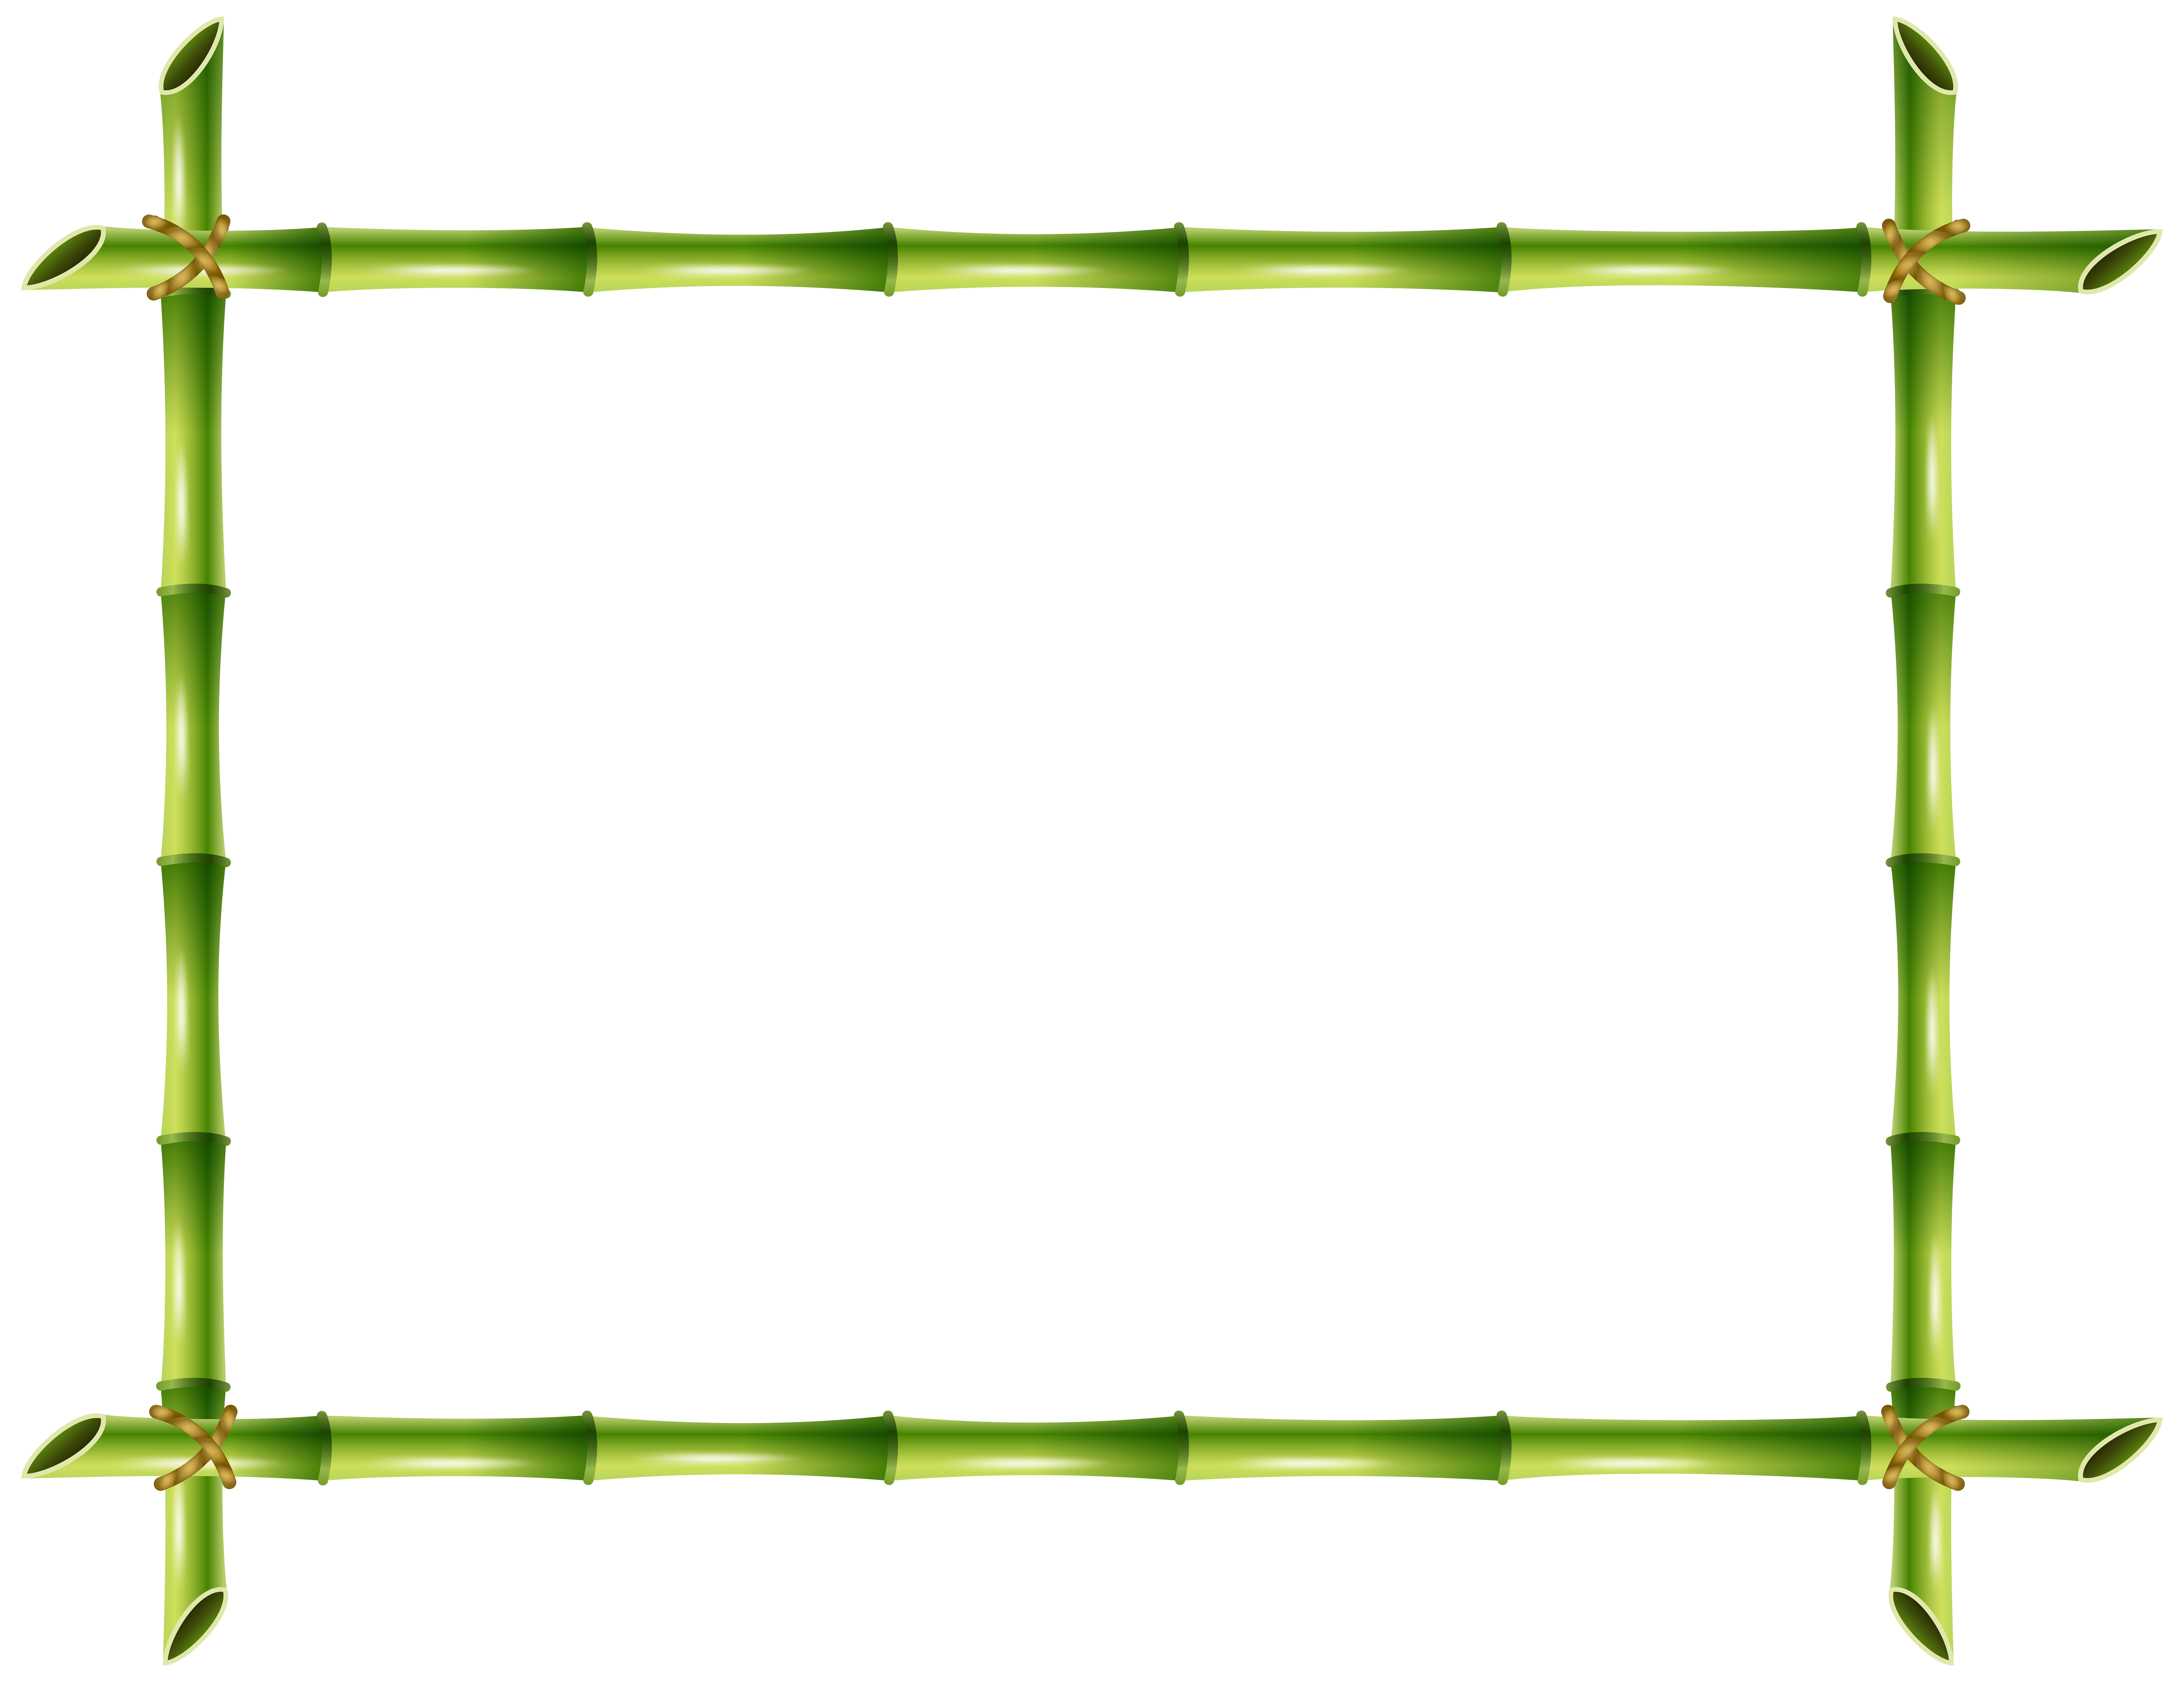 Bamboo clipart transparent background. Frame png clip art